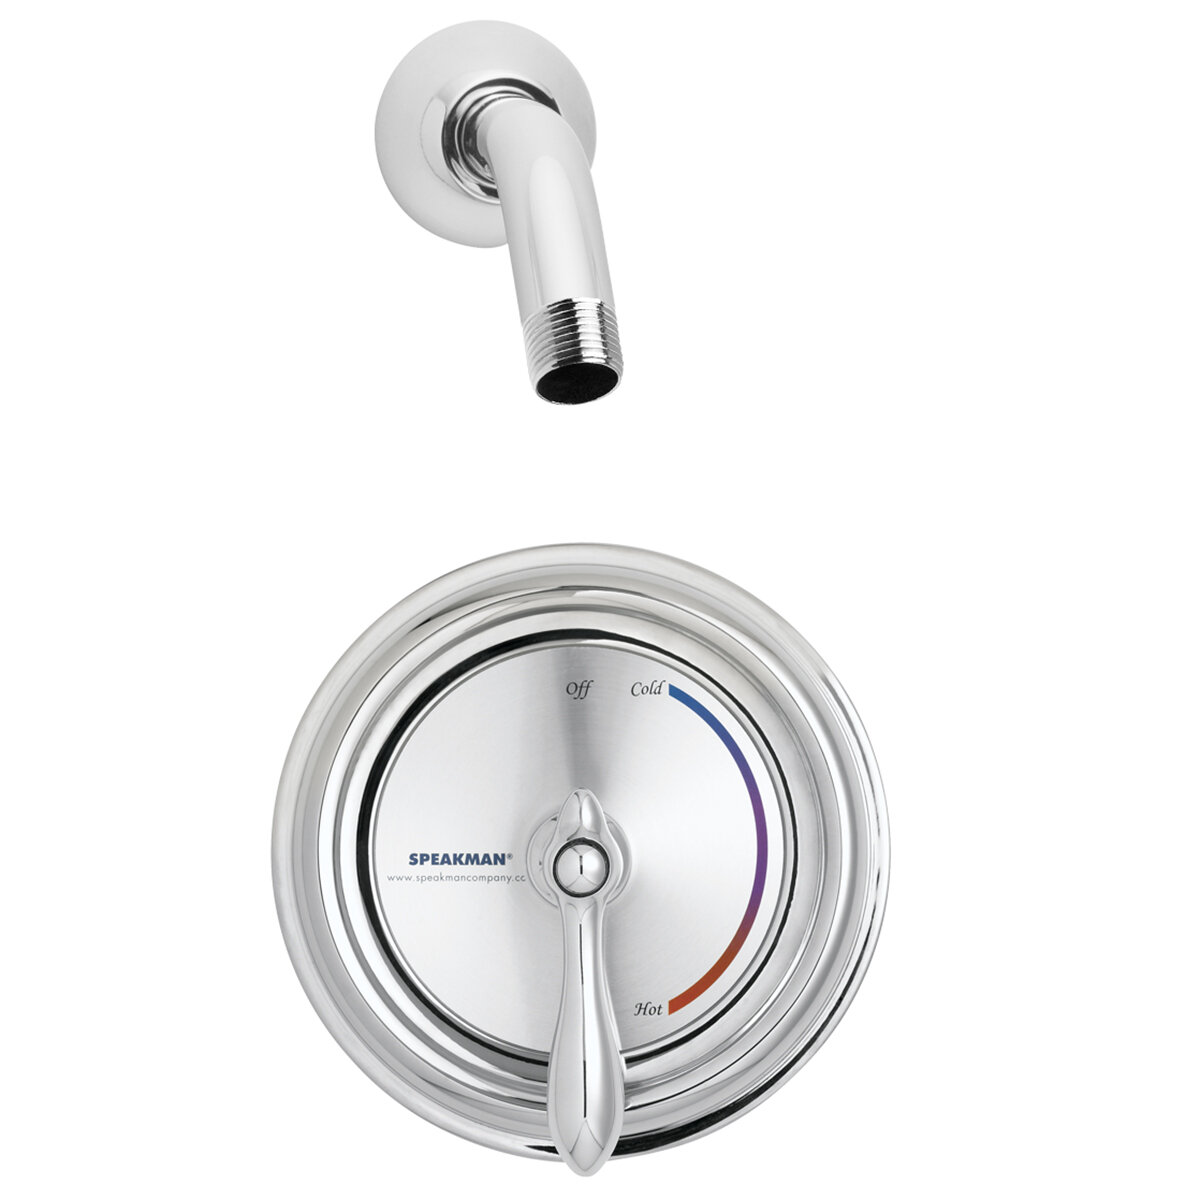 Speakman Sentinel Mark Ii Thermostatic Shower Faucet With Valve And